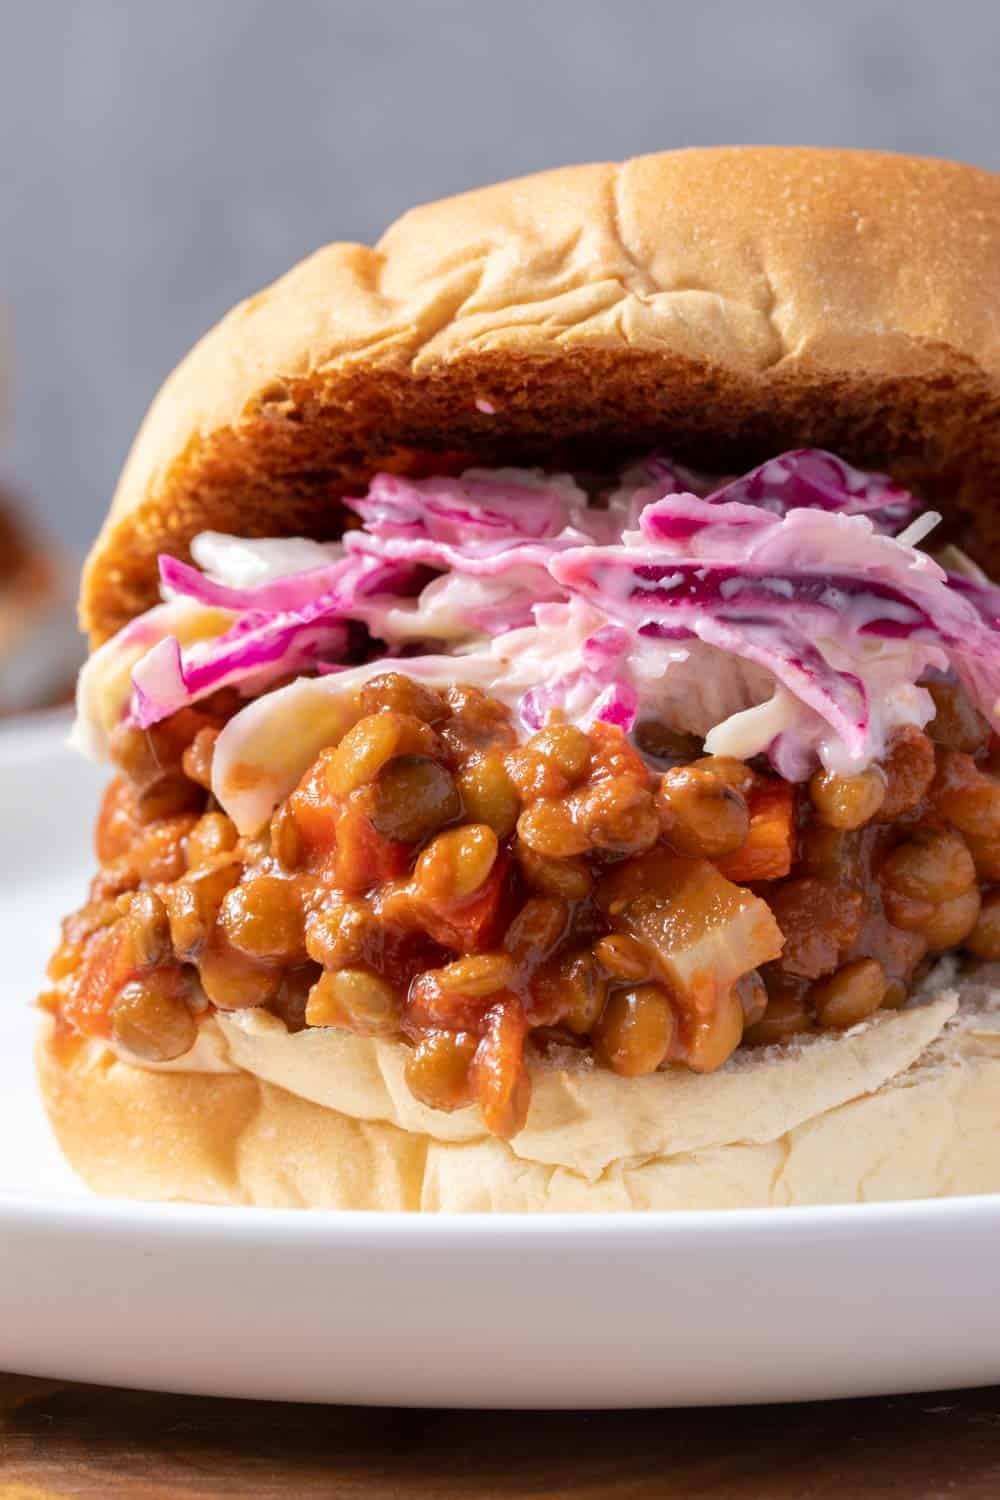 Closeup of the sloppy lentil joes with coleslaw